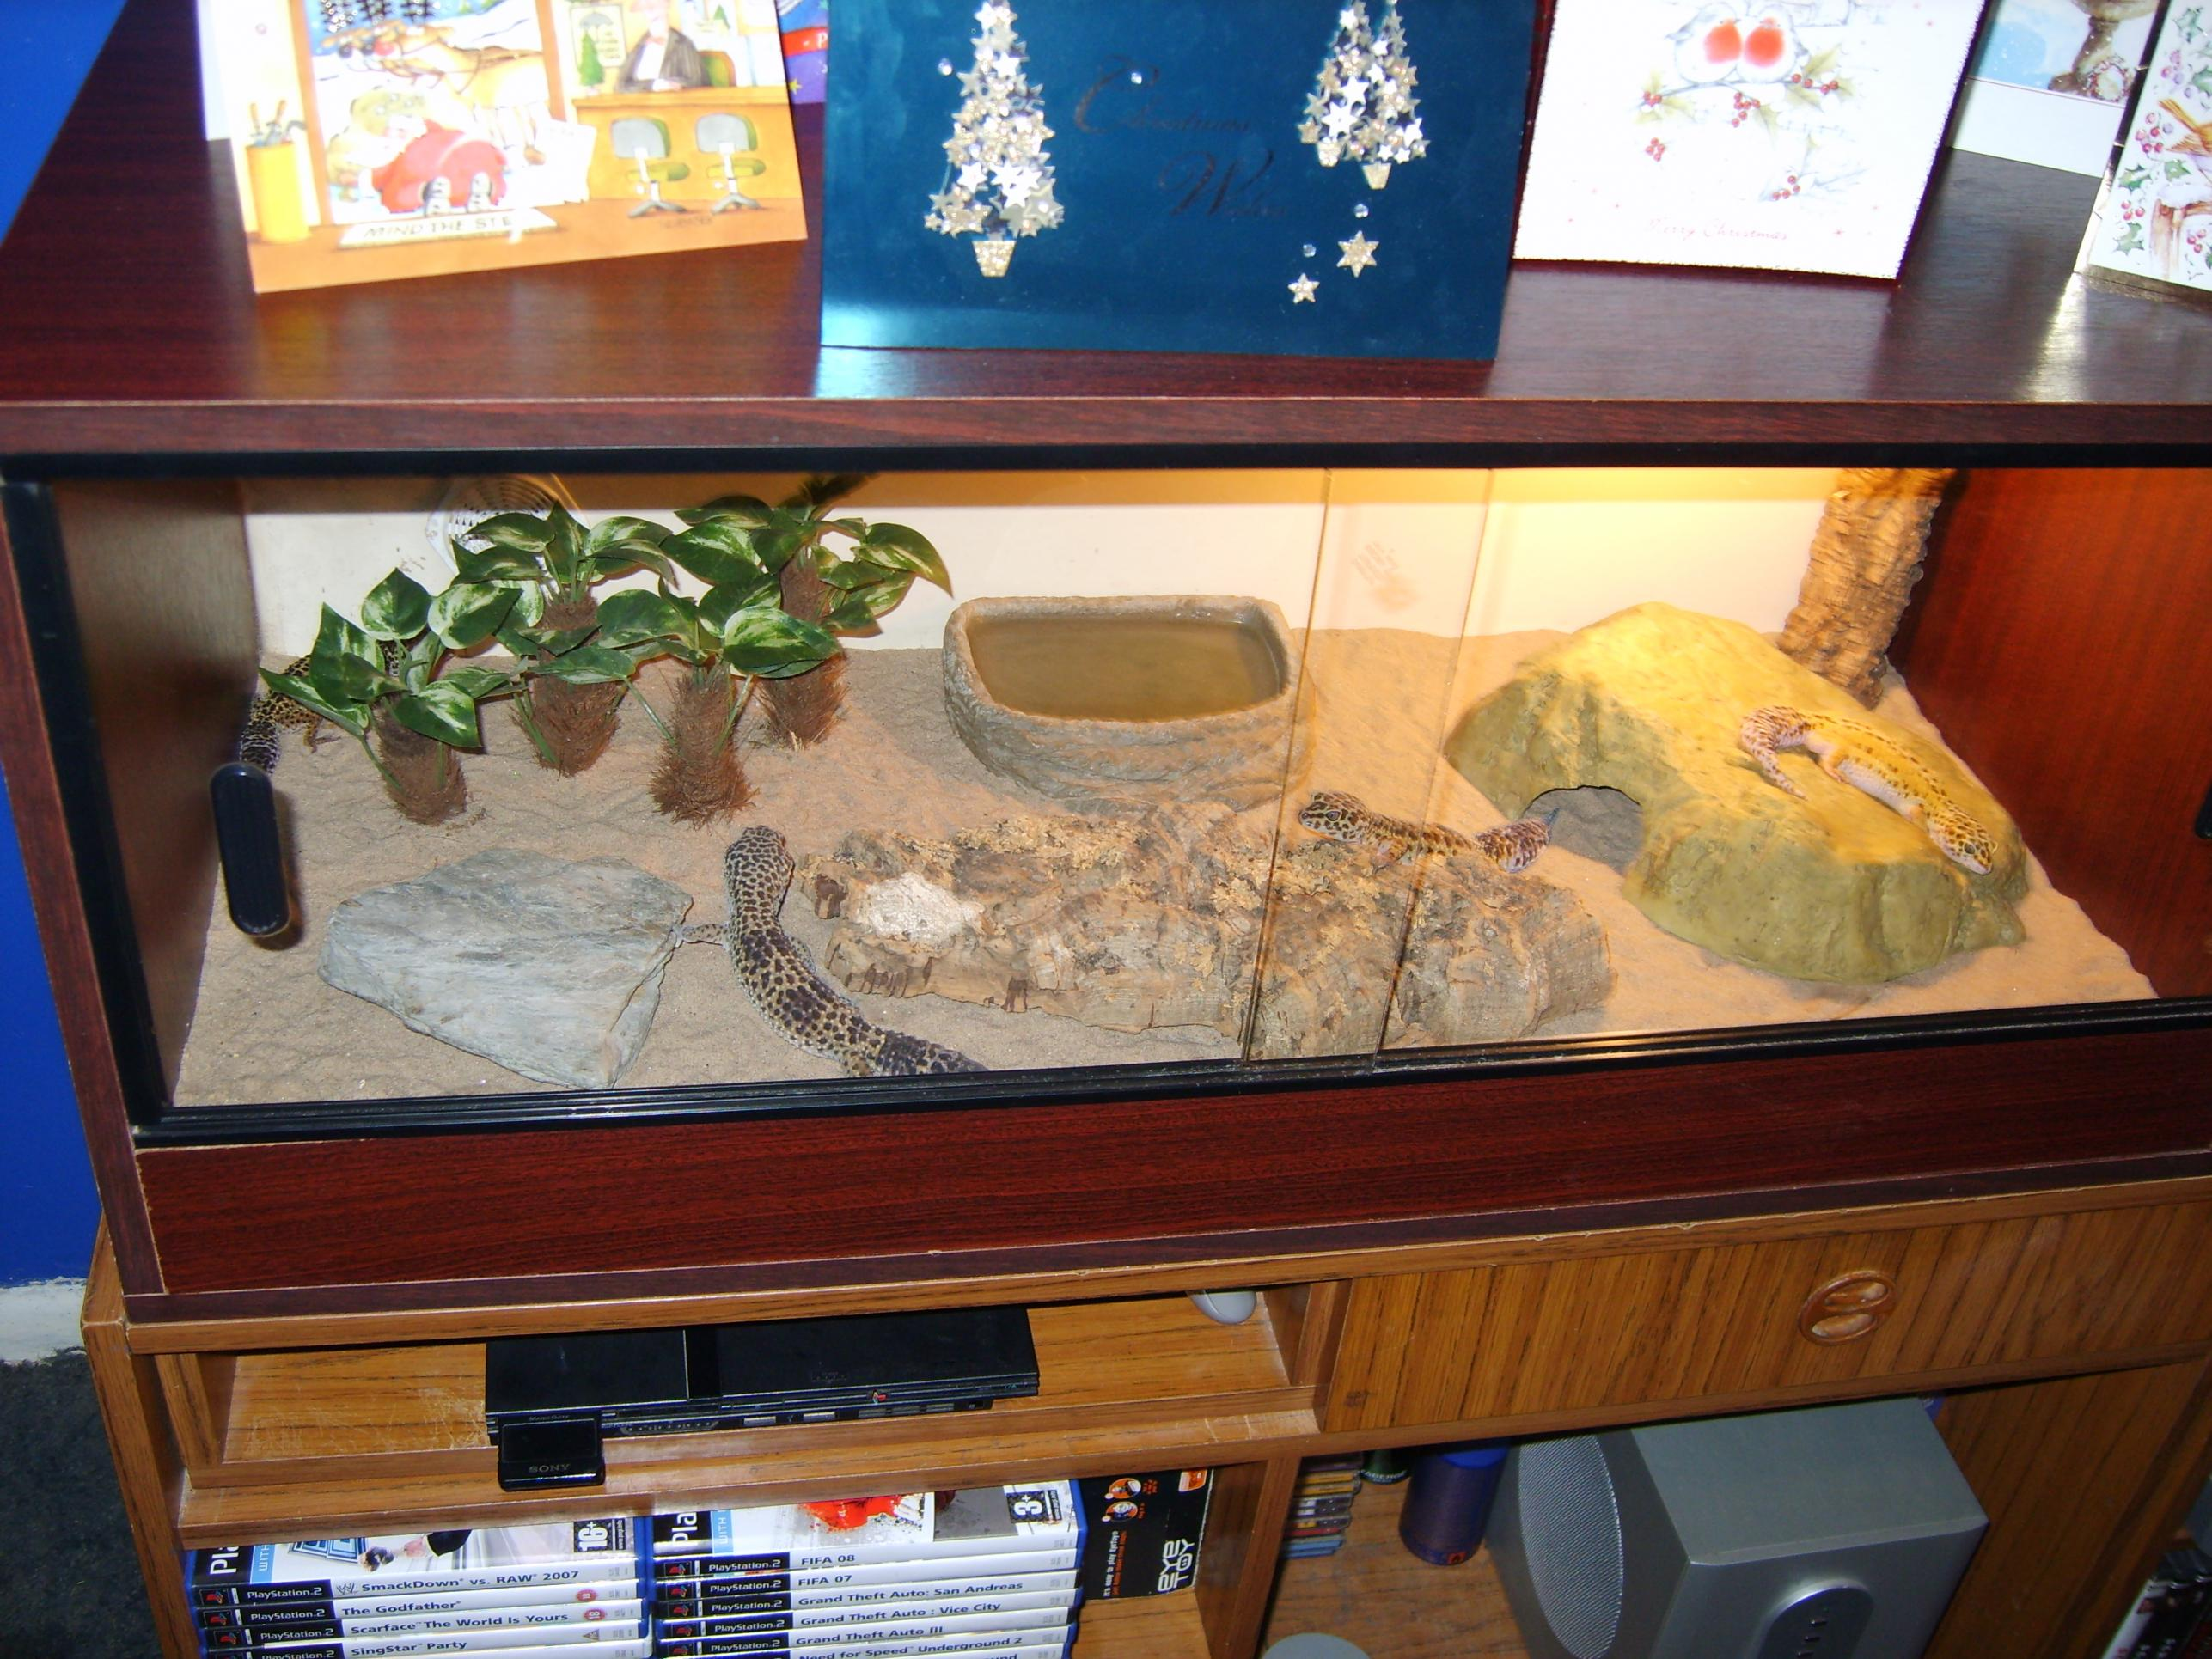 Europe leopard gecko and tank for swap - Reptile ForumsLeopard Gecko Hatchling Tank Setup